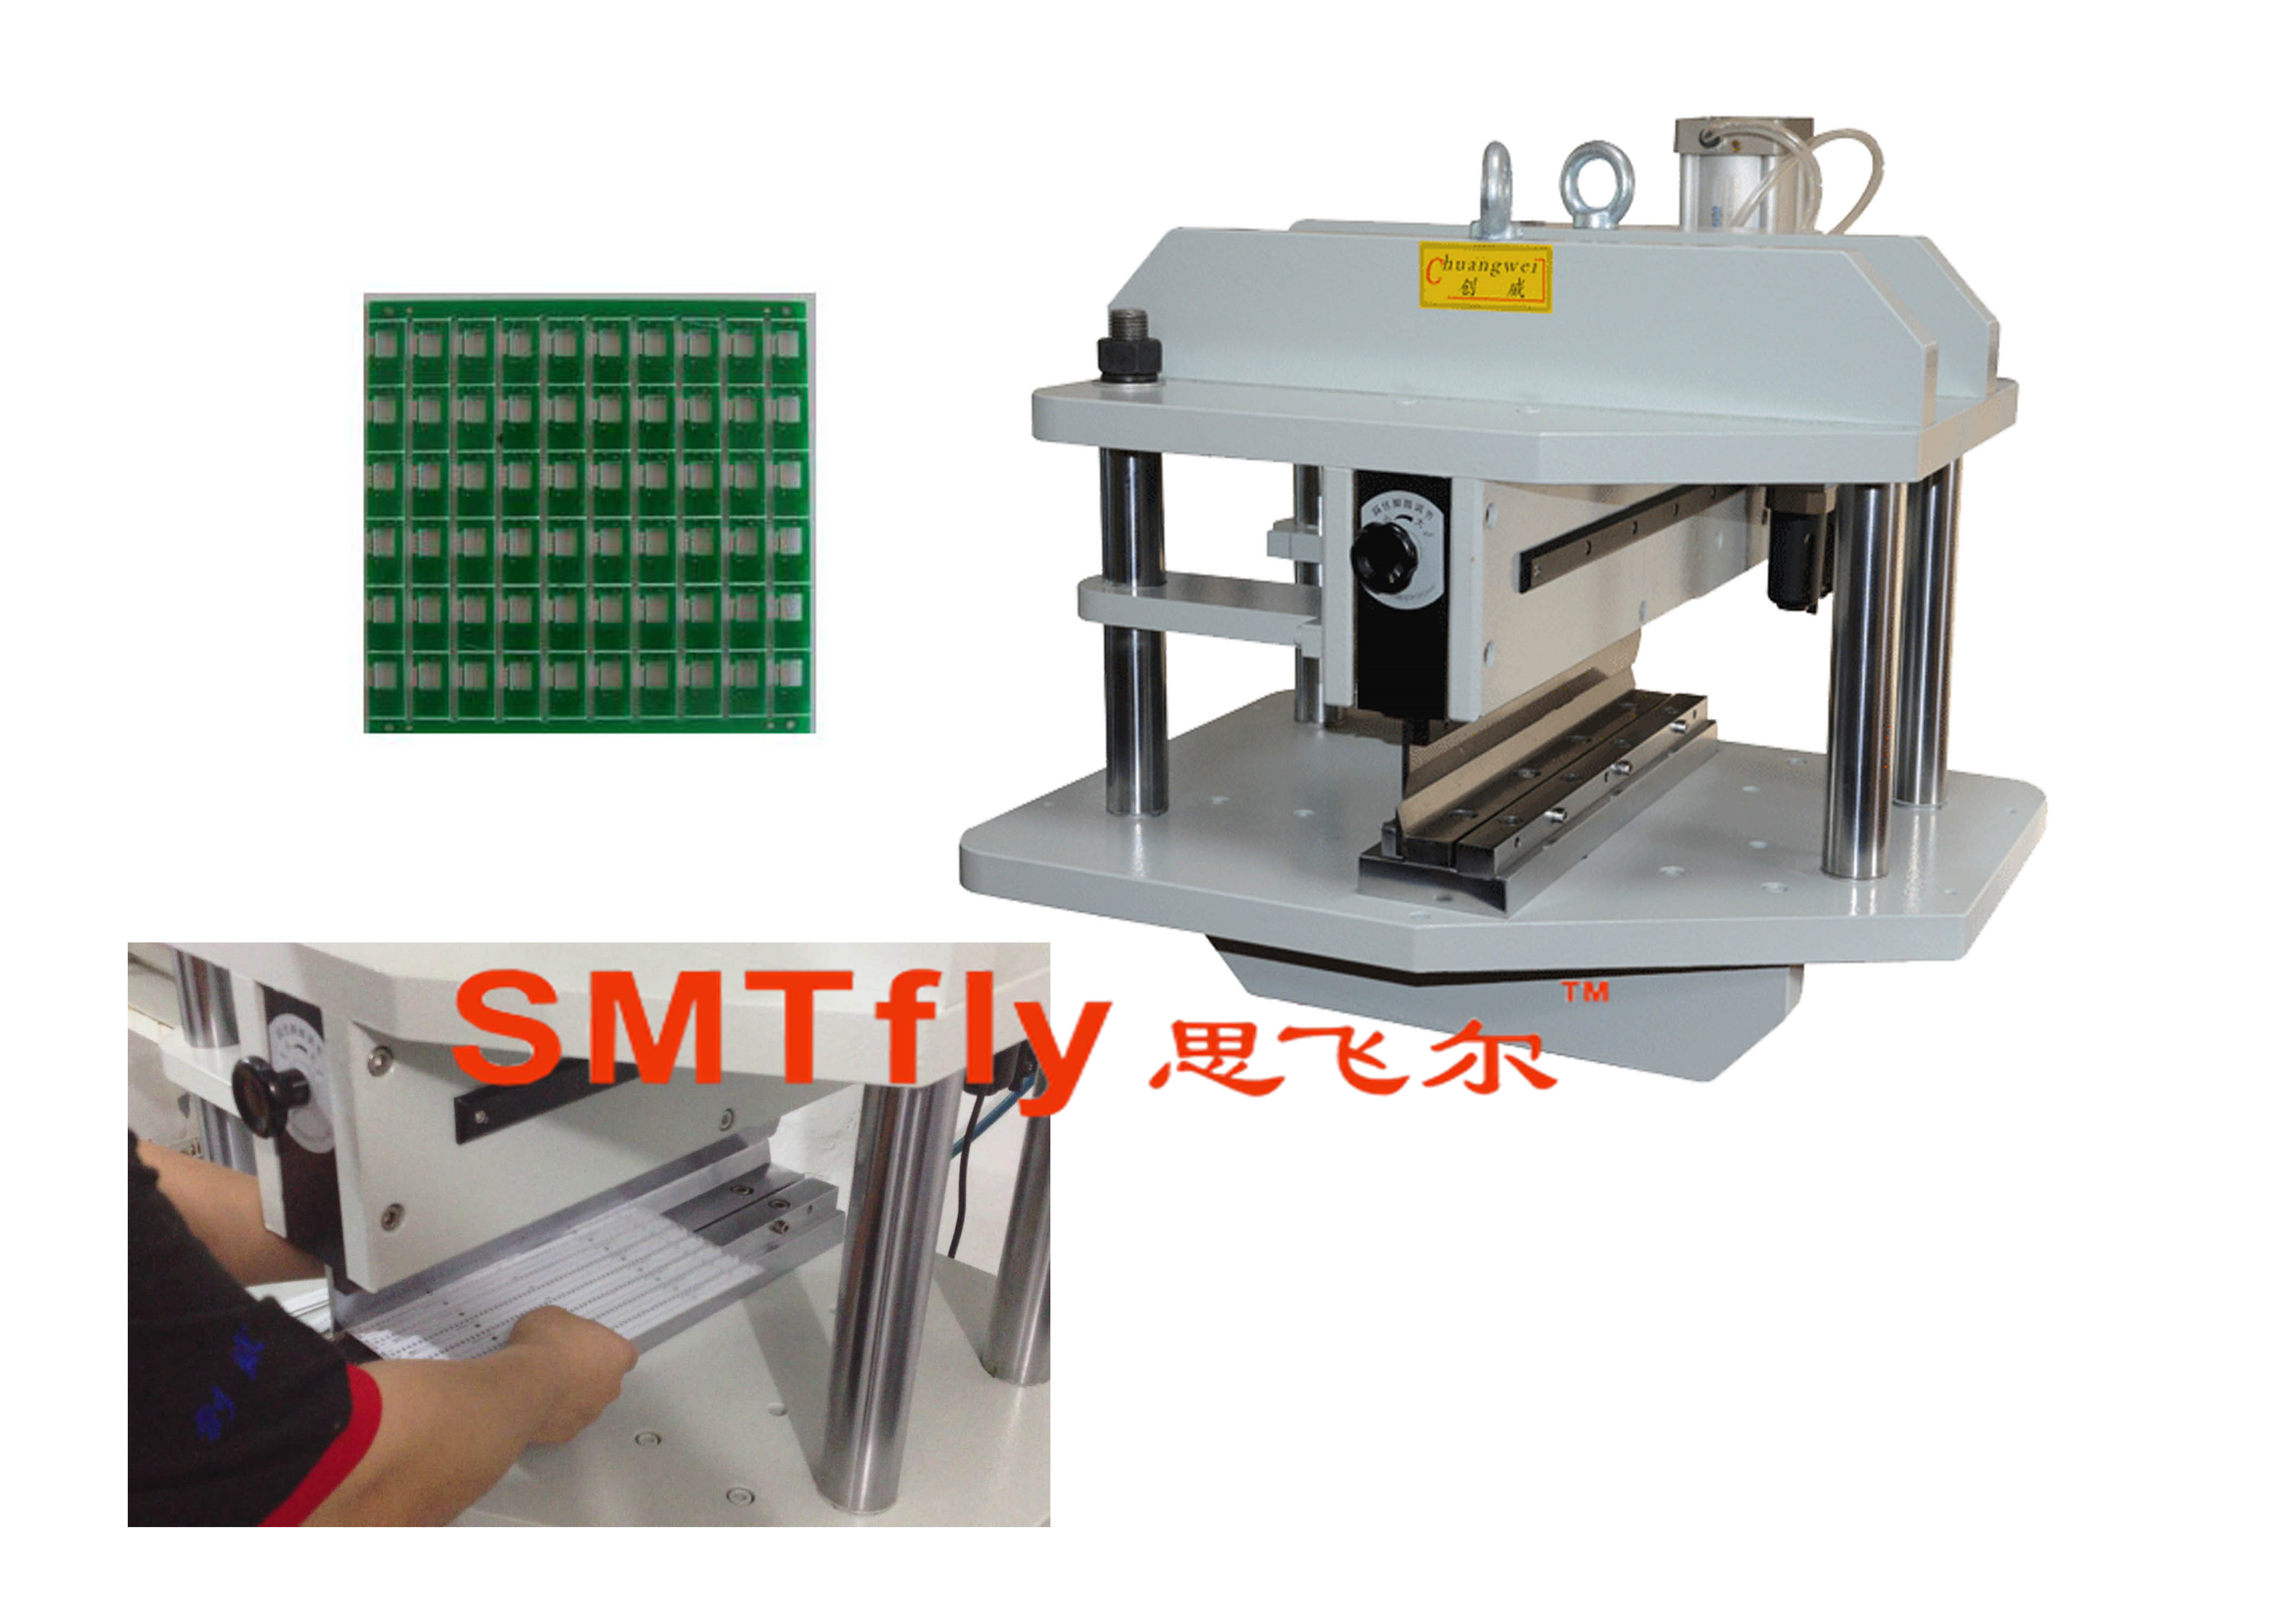 Automatic Power PCB Cutter,SMTfly-450C